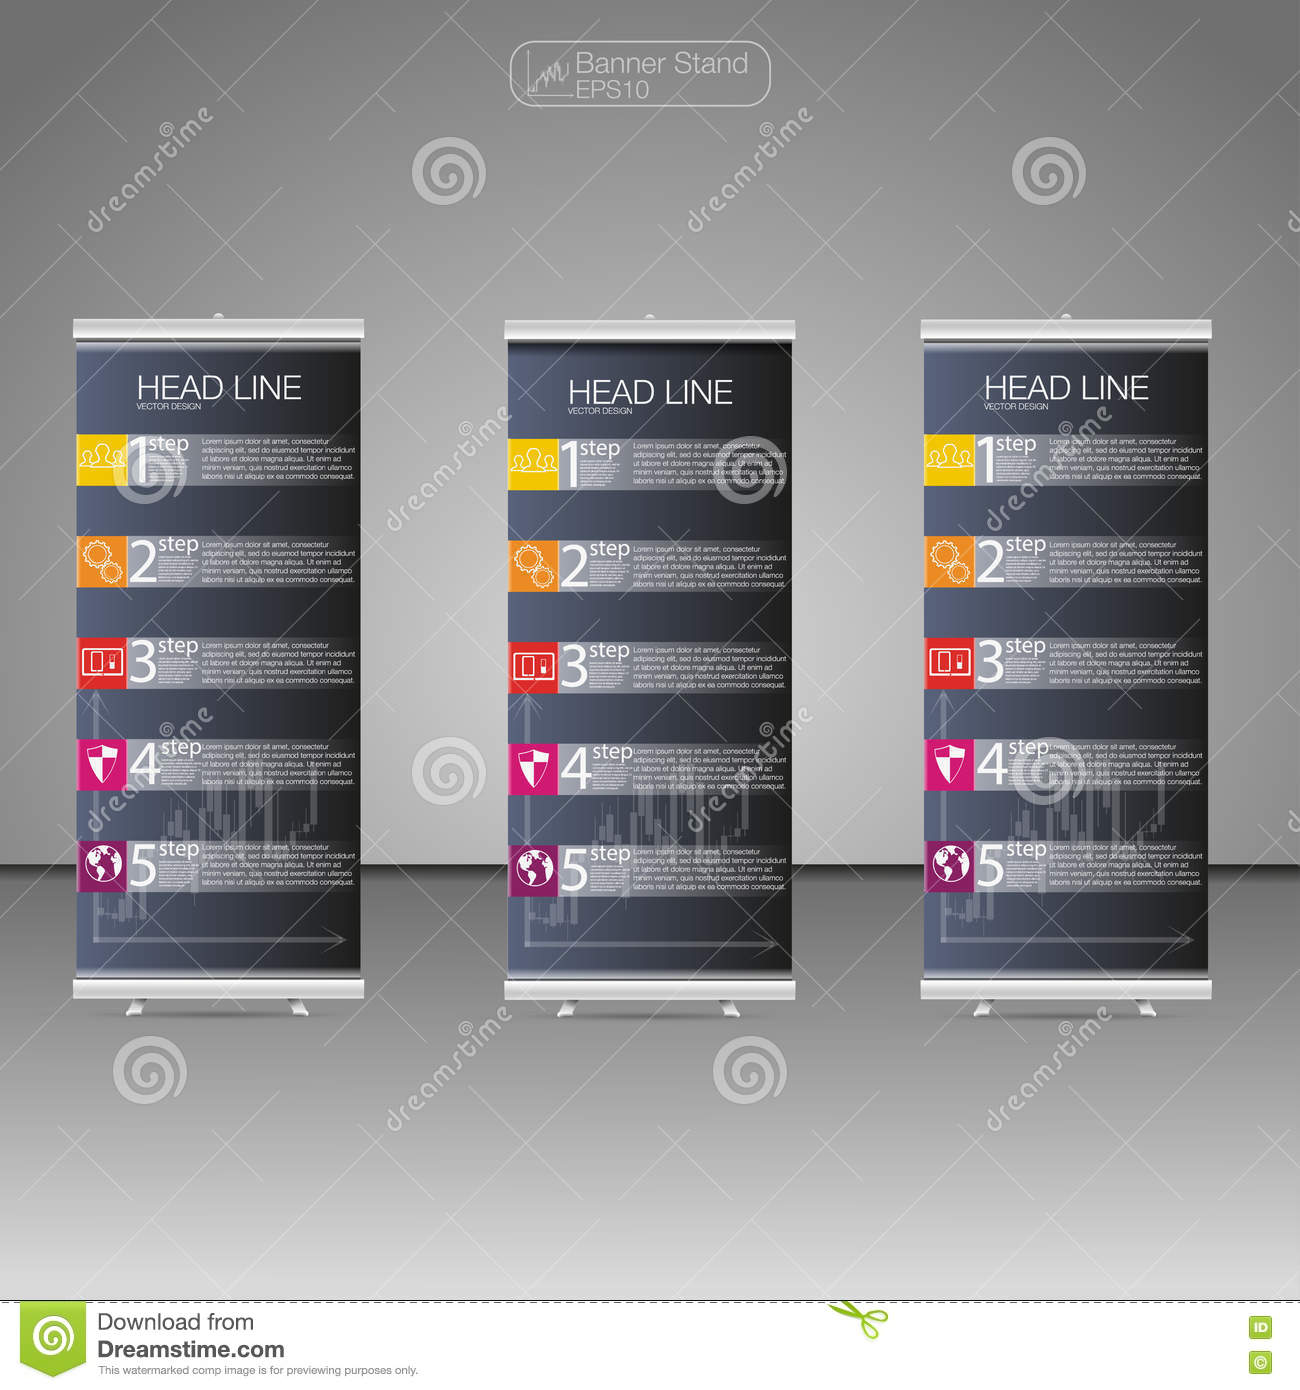 roll up banner stand, template and info graphics, banner